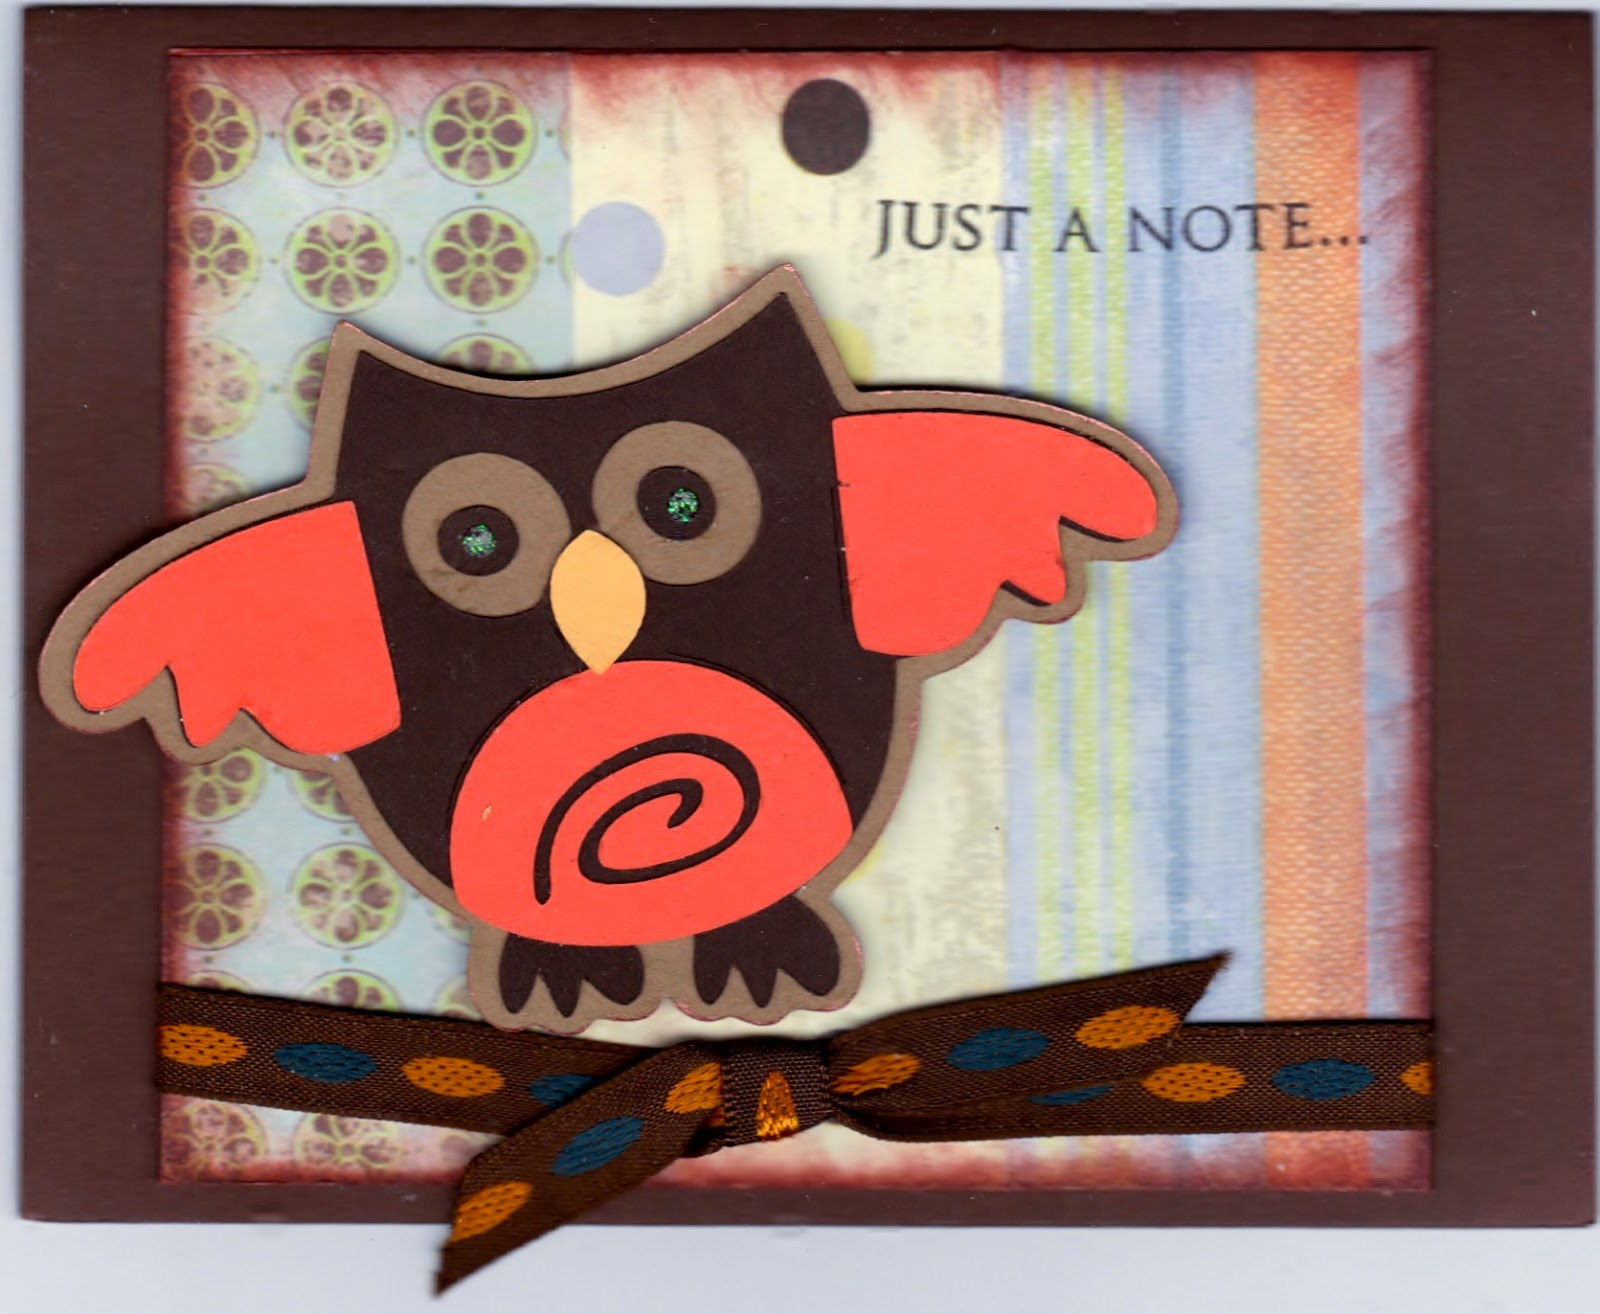 https://www.etsy.com/listing/209653504/just-a-note-owl-handmade-blank-supply